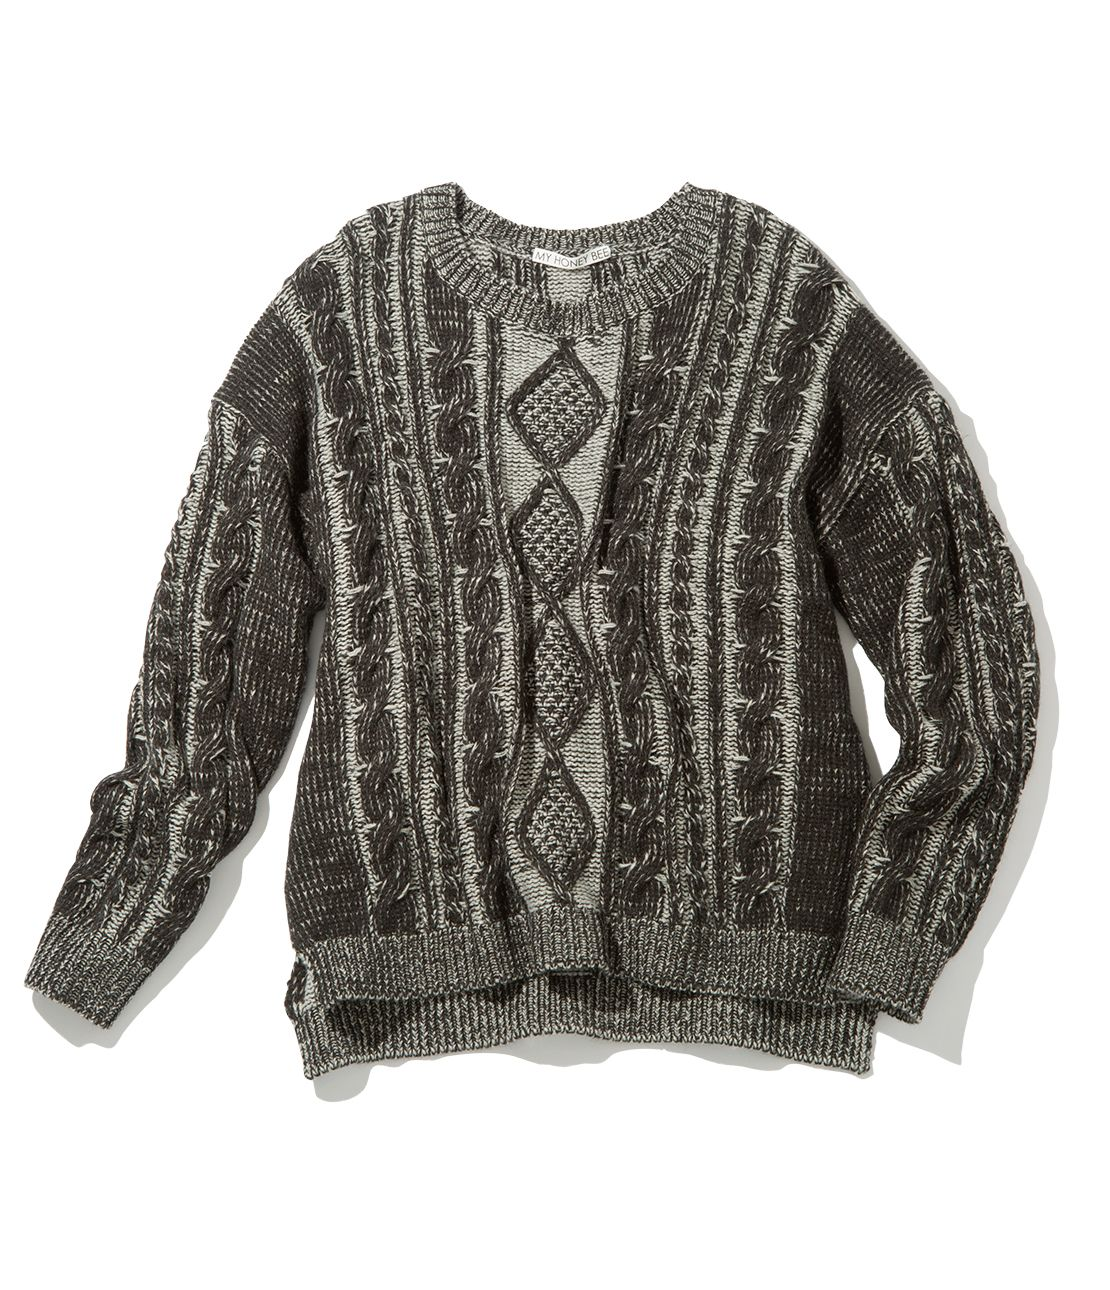 MHB cable knit top